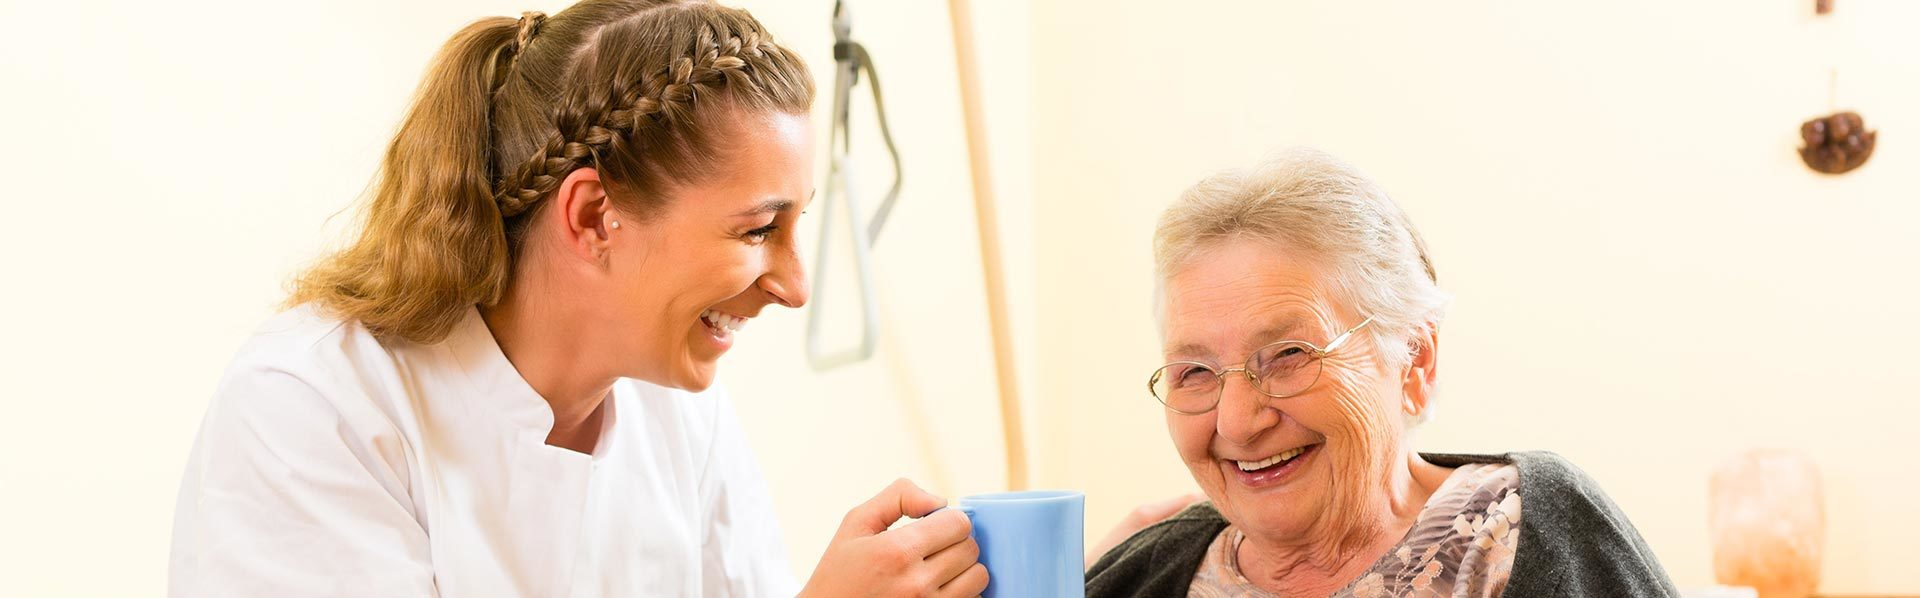 Smiling caregiver with senior